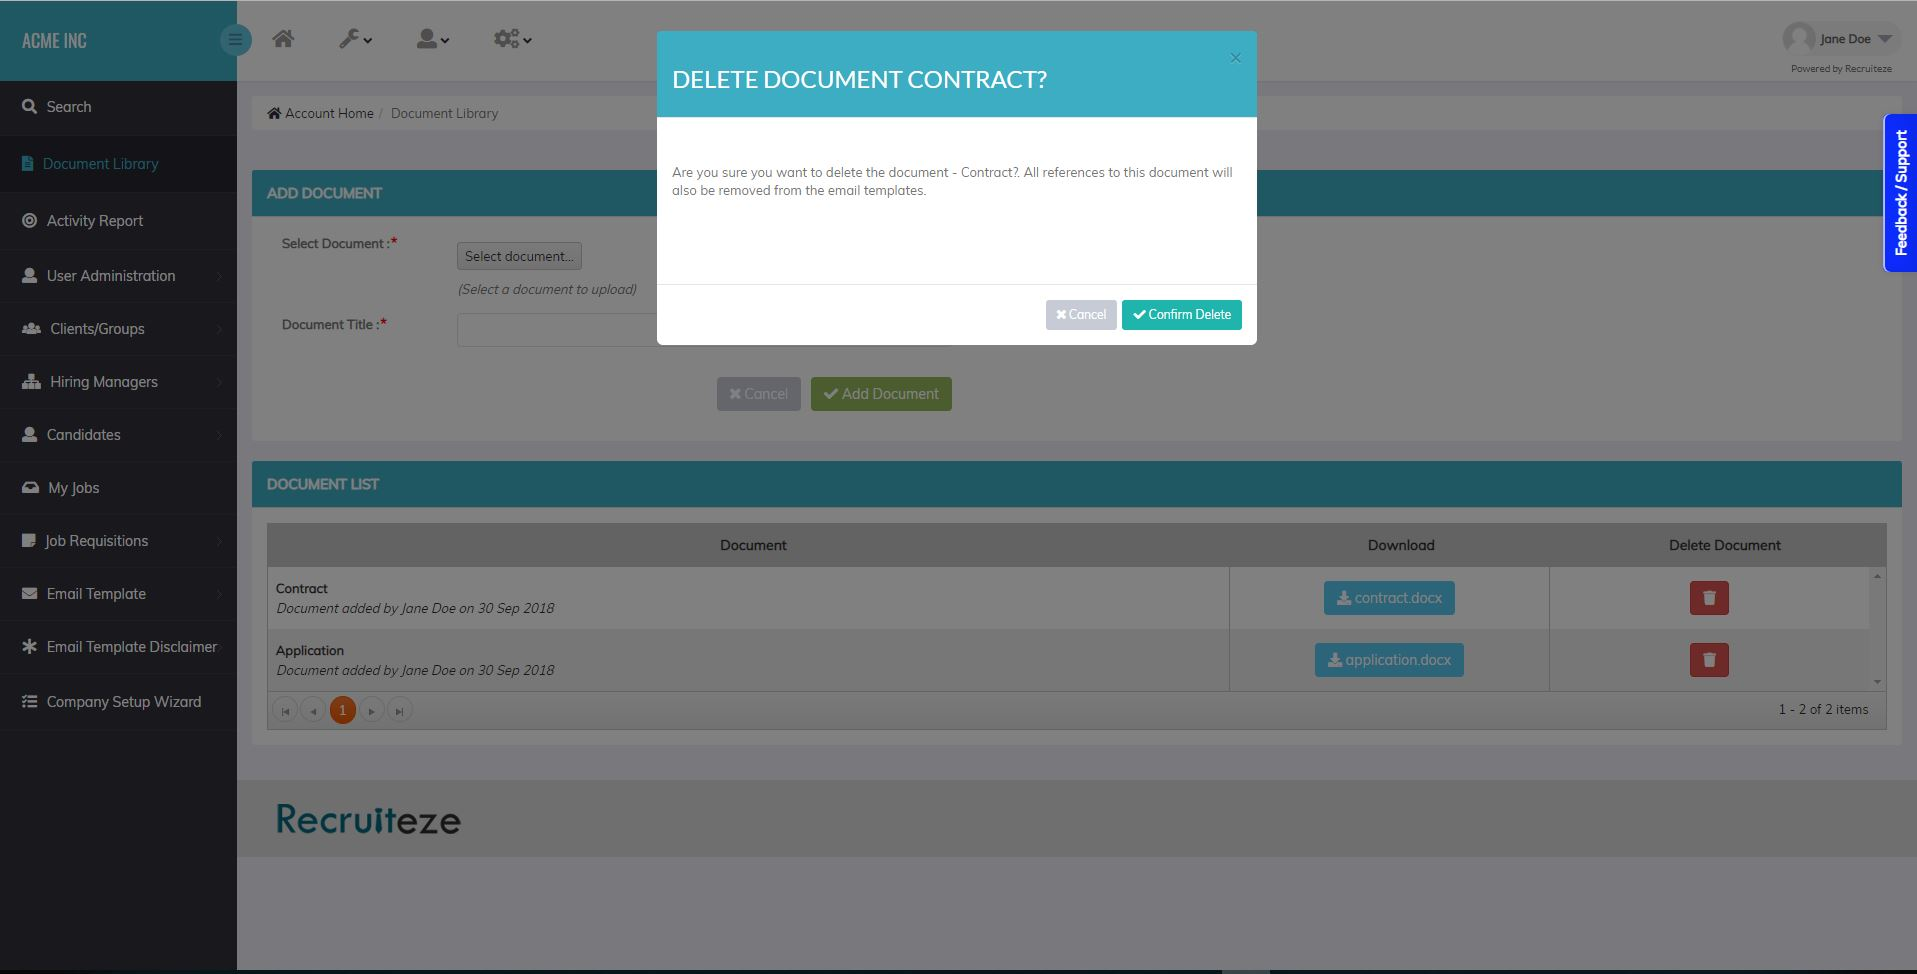 Applicant Tracking System - Delete Document Confirmation